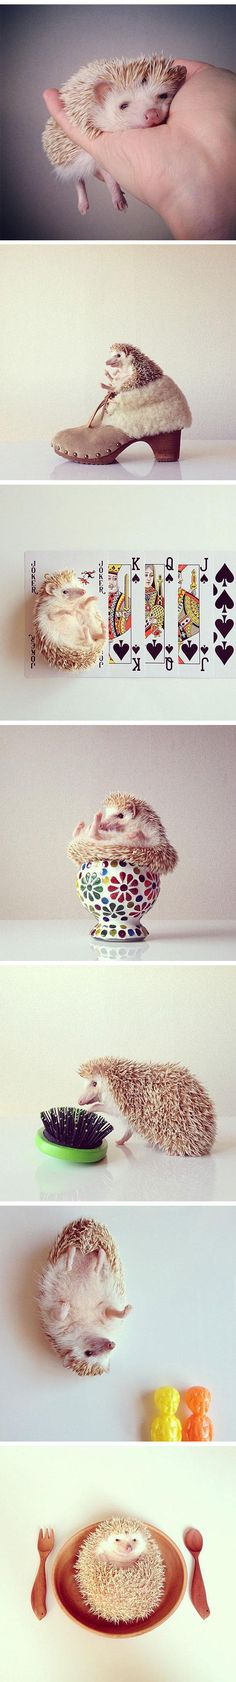 Cutest Hedgehog Ever!!!!!